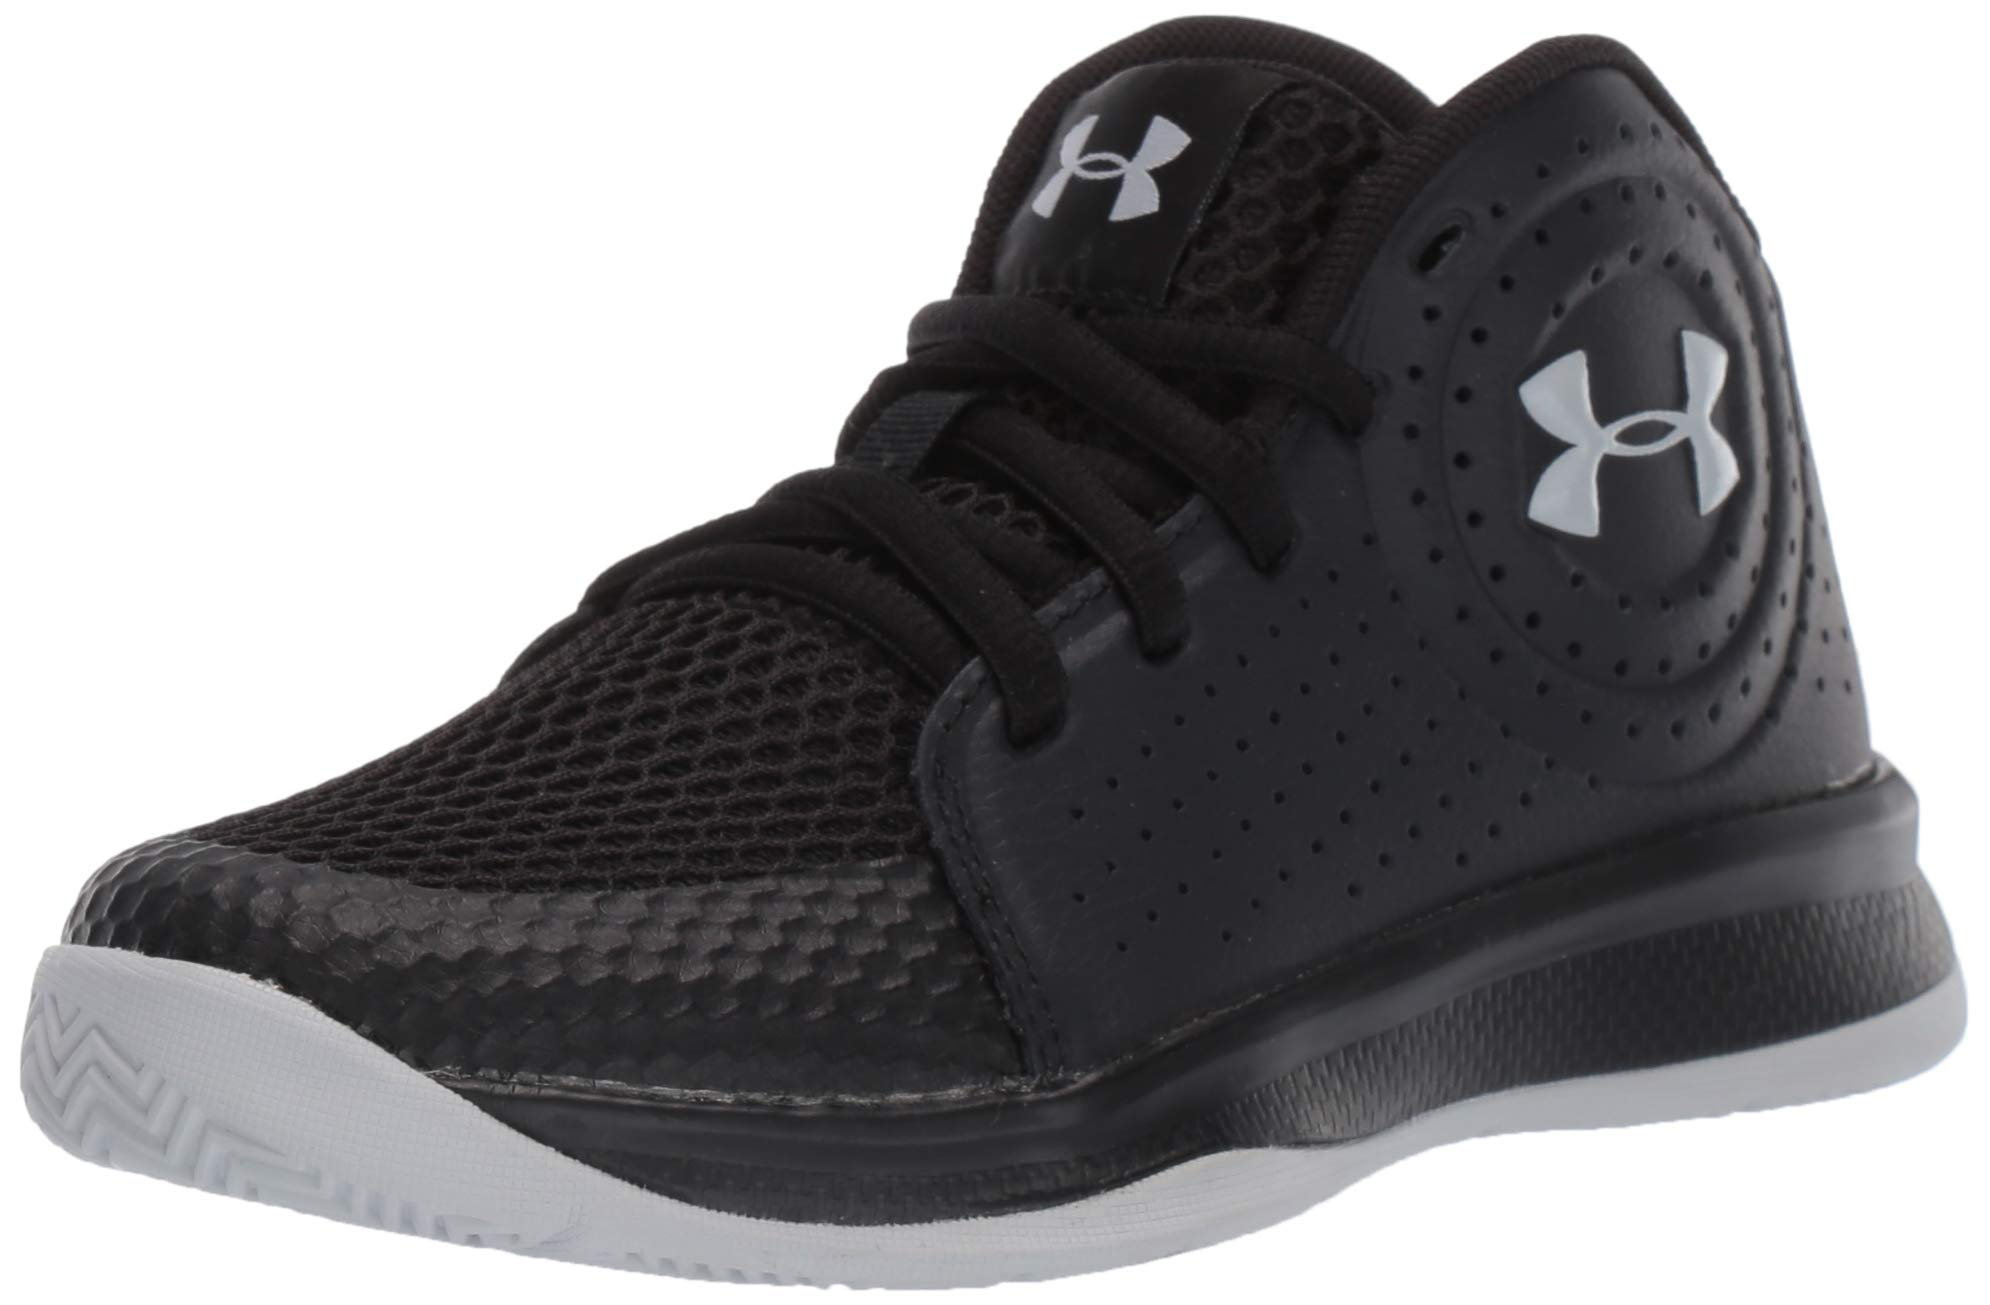 Under Armour Unisex Pre School Jet 2019 Basketball Shoe, Black, 2.5 M US Little Kid